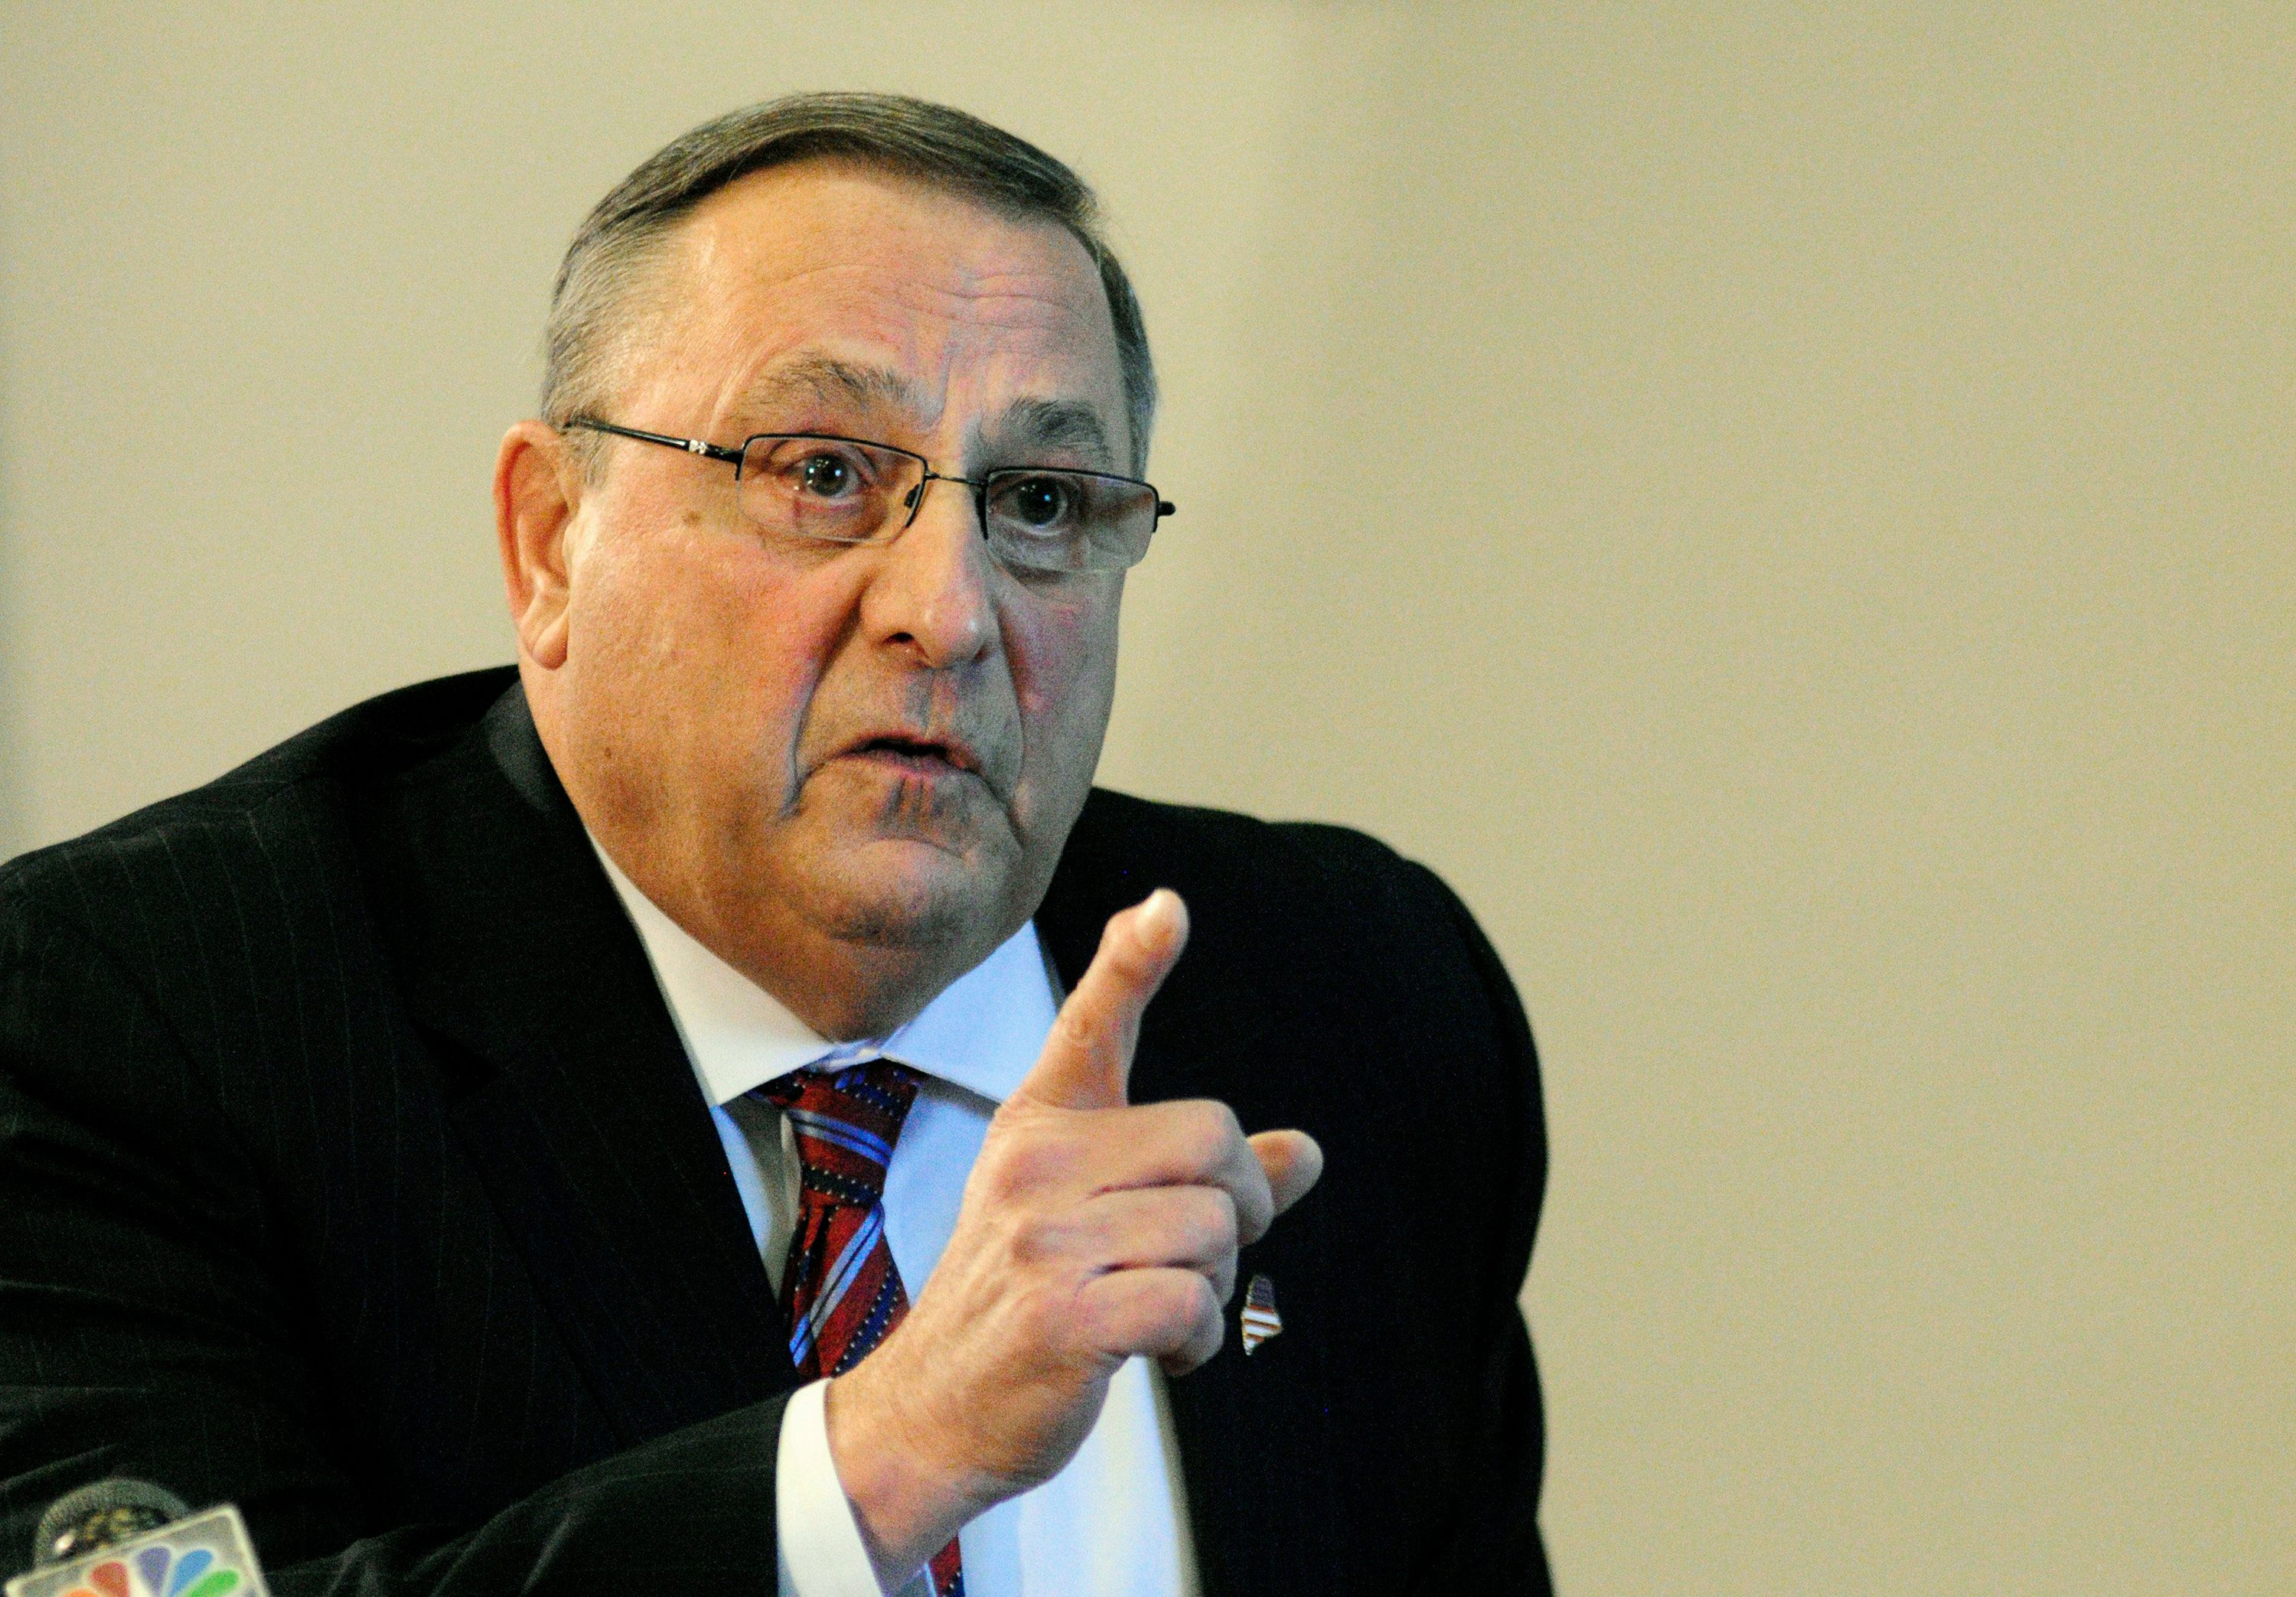 Maine Gov. Paul LePage has been repeating a story about a high school student who uses heroin, but the school says it isn't t